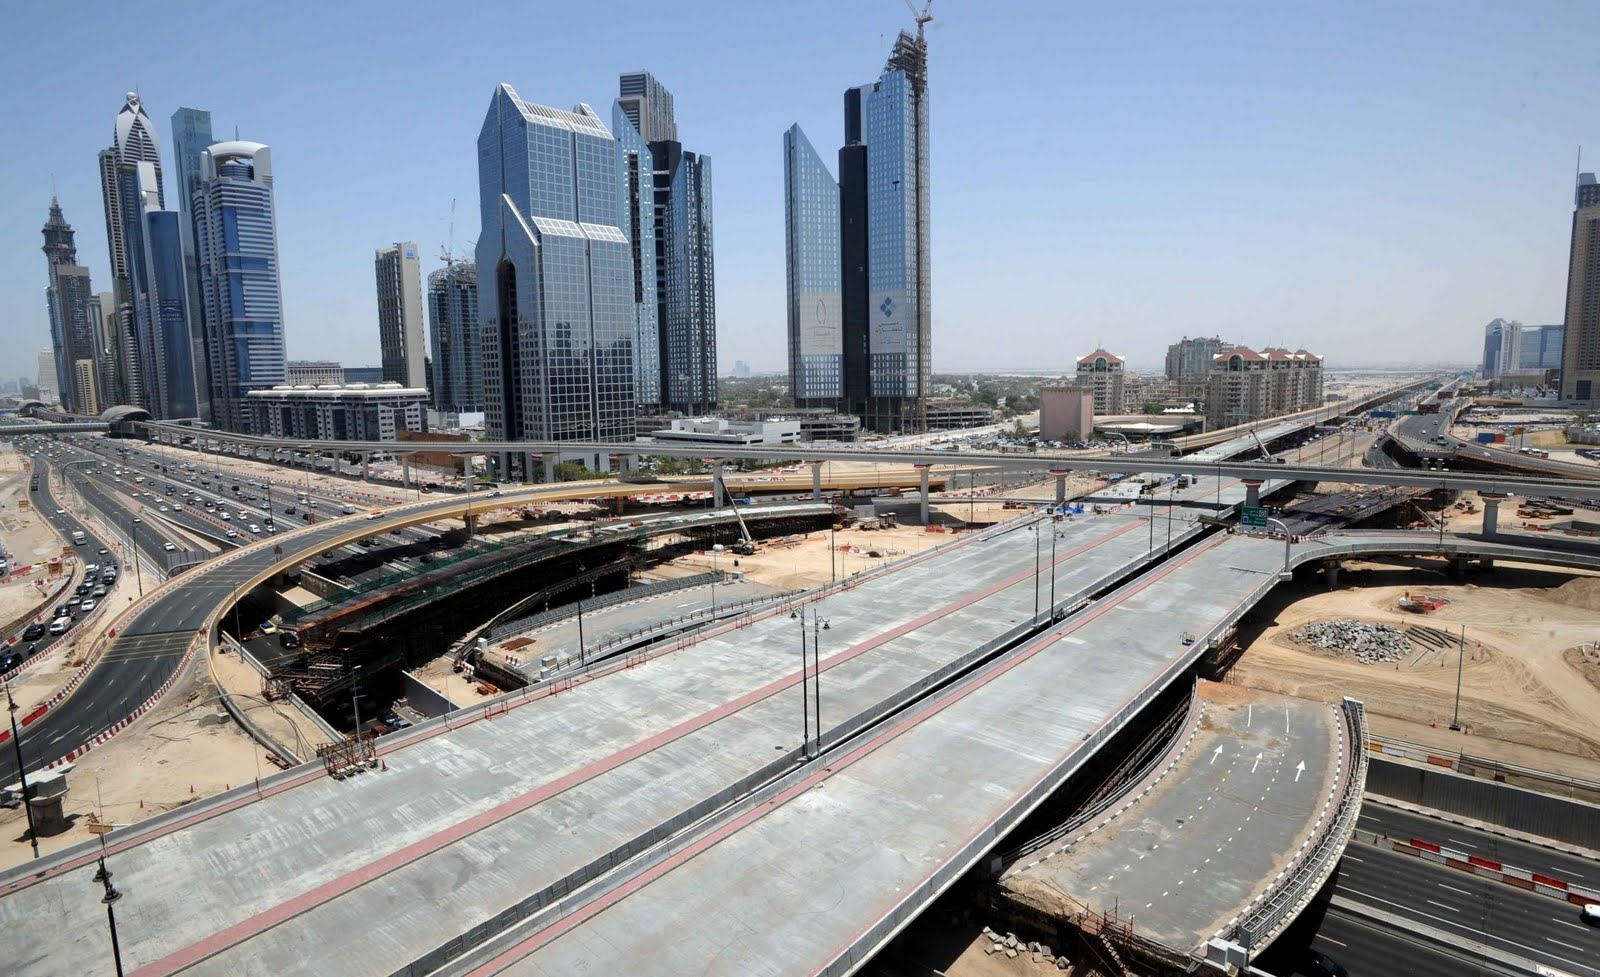 rta bridges final 1 Watch: rta opens new abu dhabi-bound bridge by yasmin al heialy on jul 4, 2016 the bridge comprises eight lanes, six of which have opened in the initial phase.